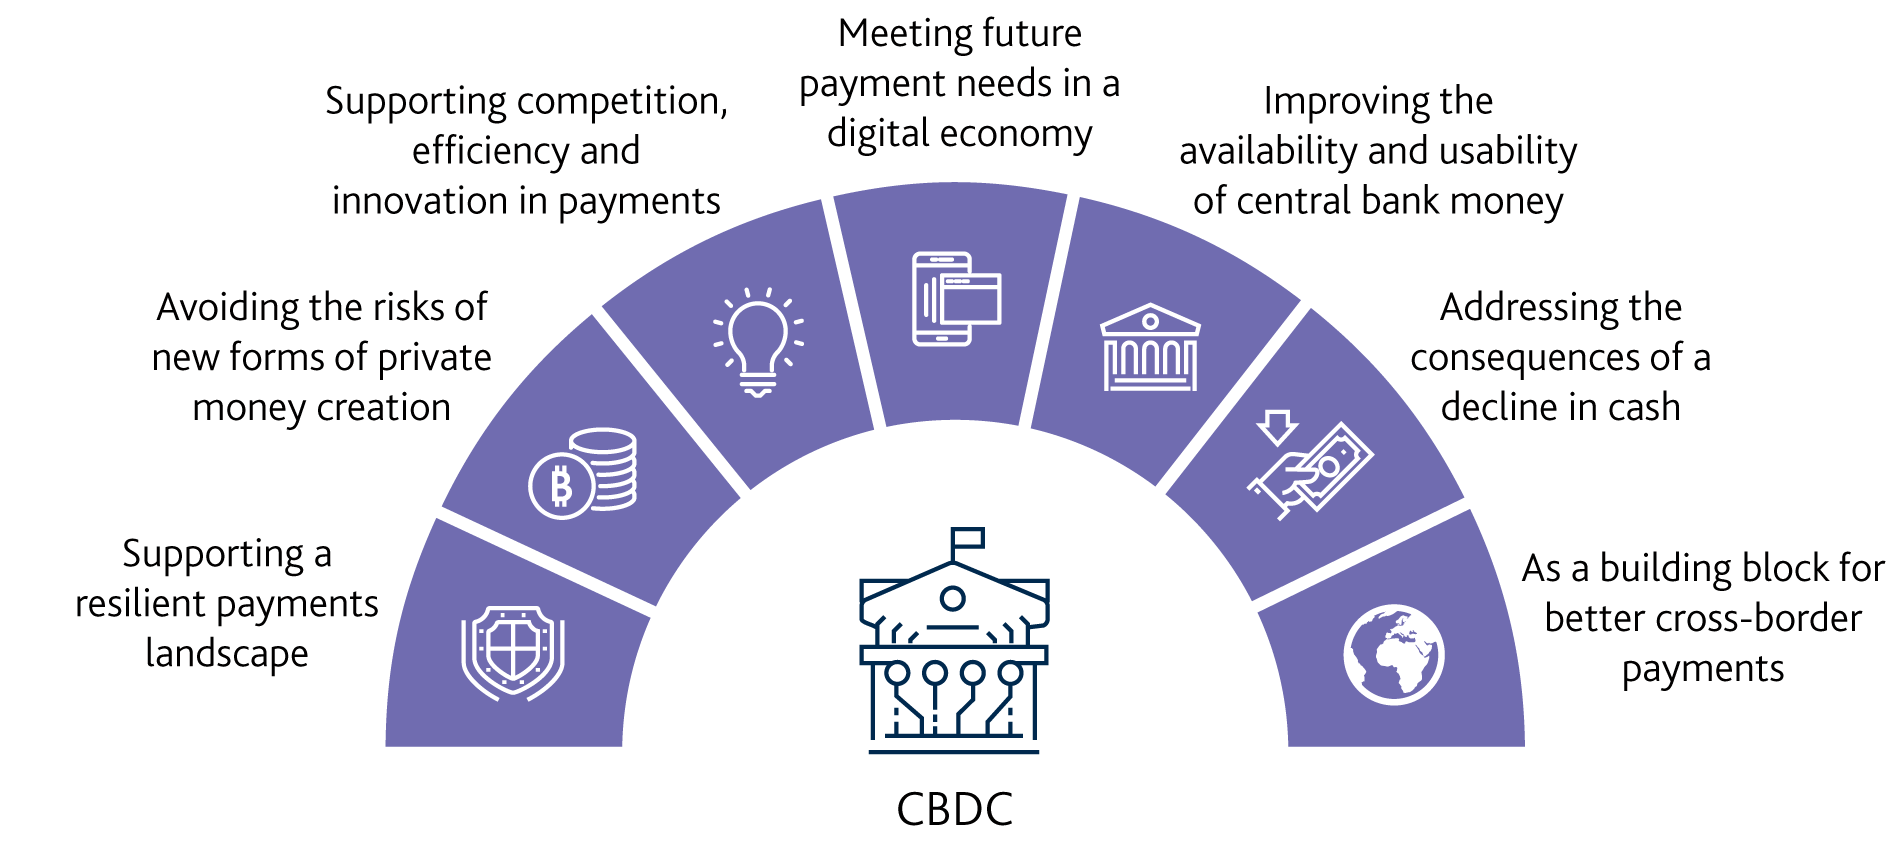 CBDC Opportunities BoE - Bank of England mulling new digital currency post-Brexit